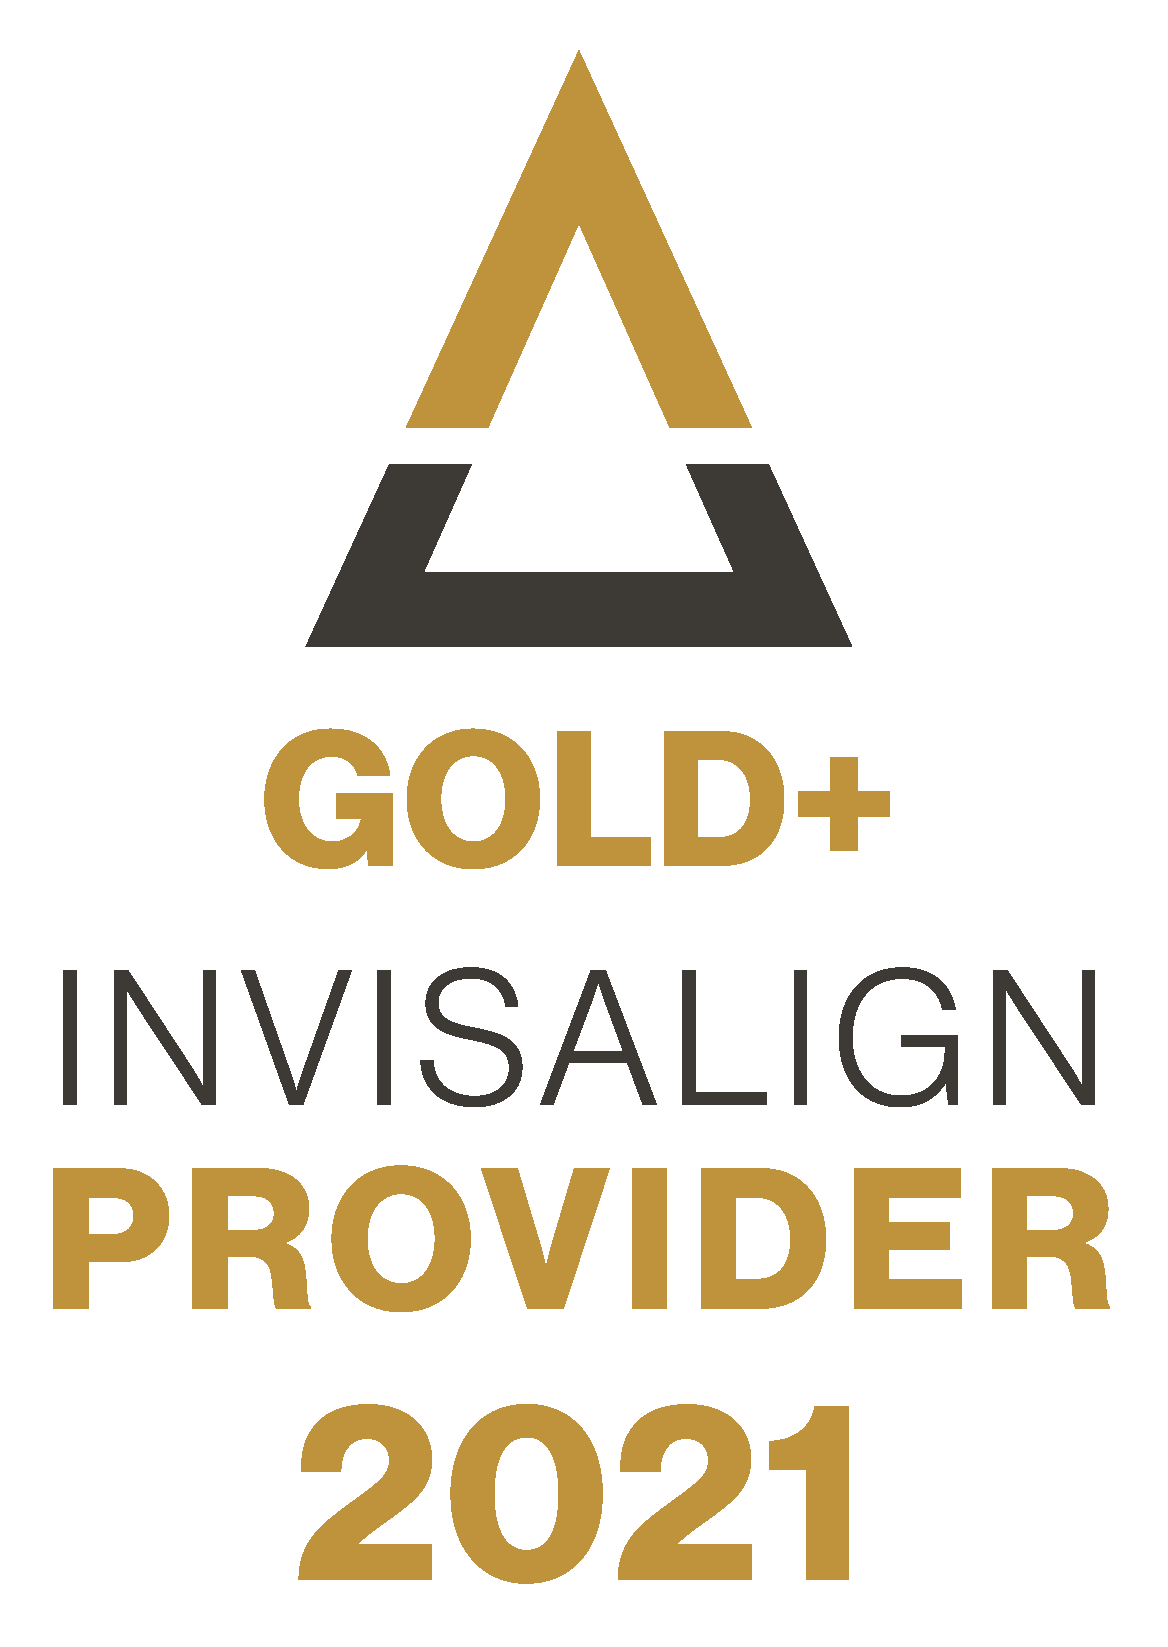 invisalign gold provider badge